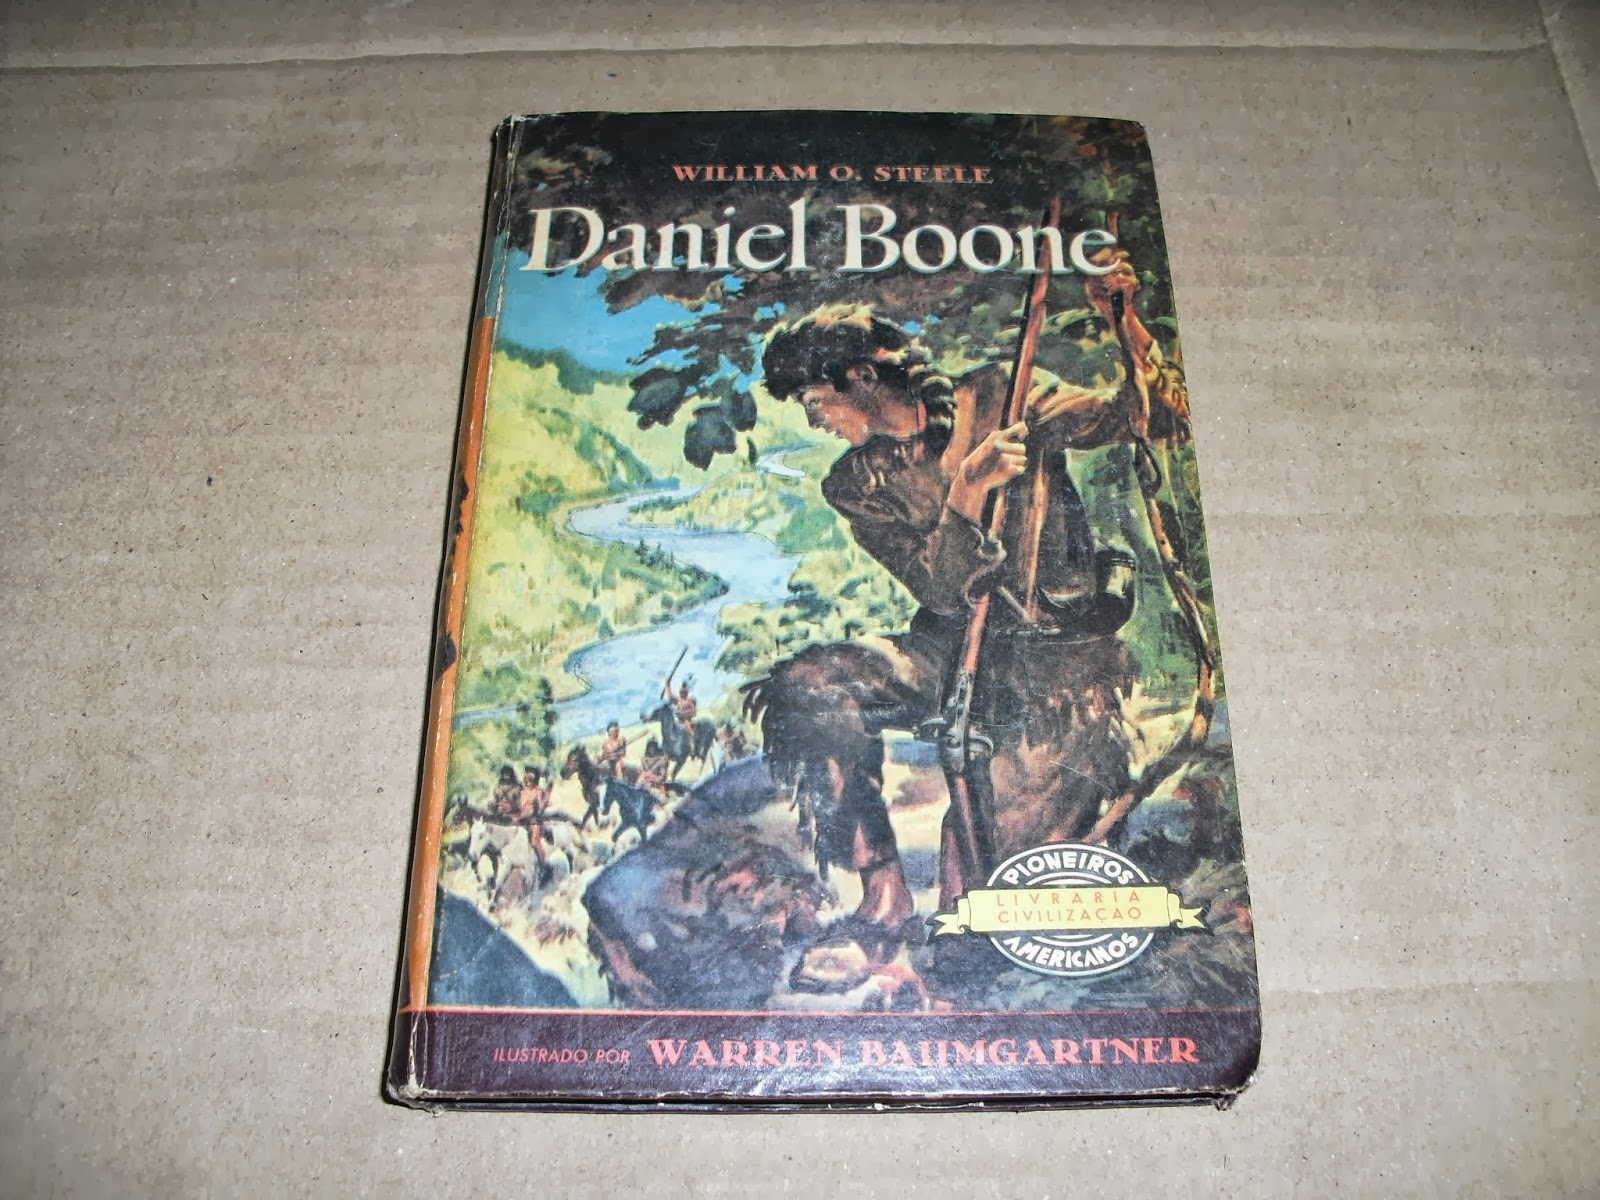 Daniel Boone - William O. Steele